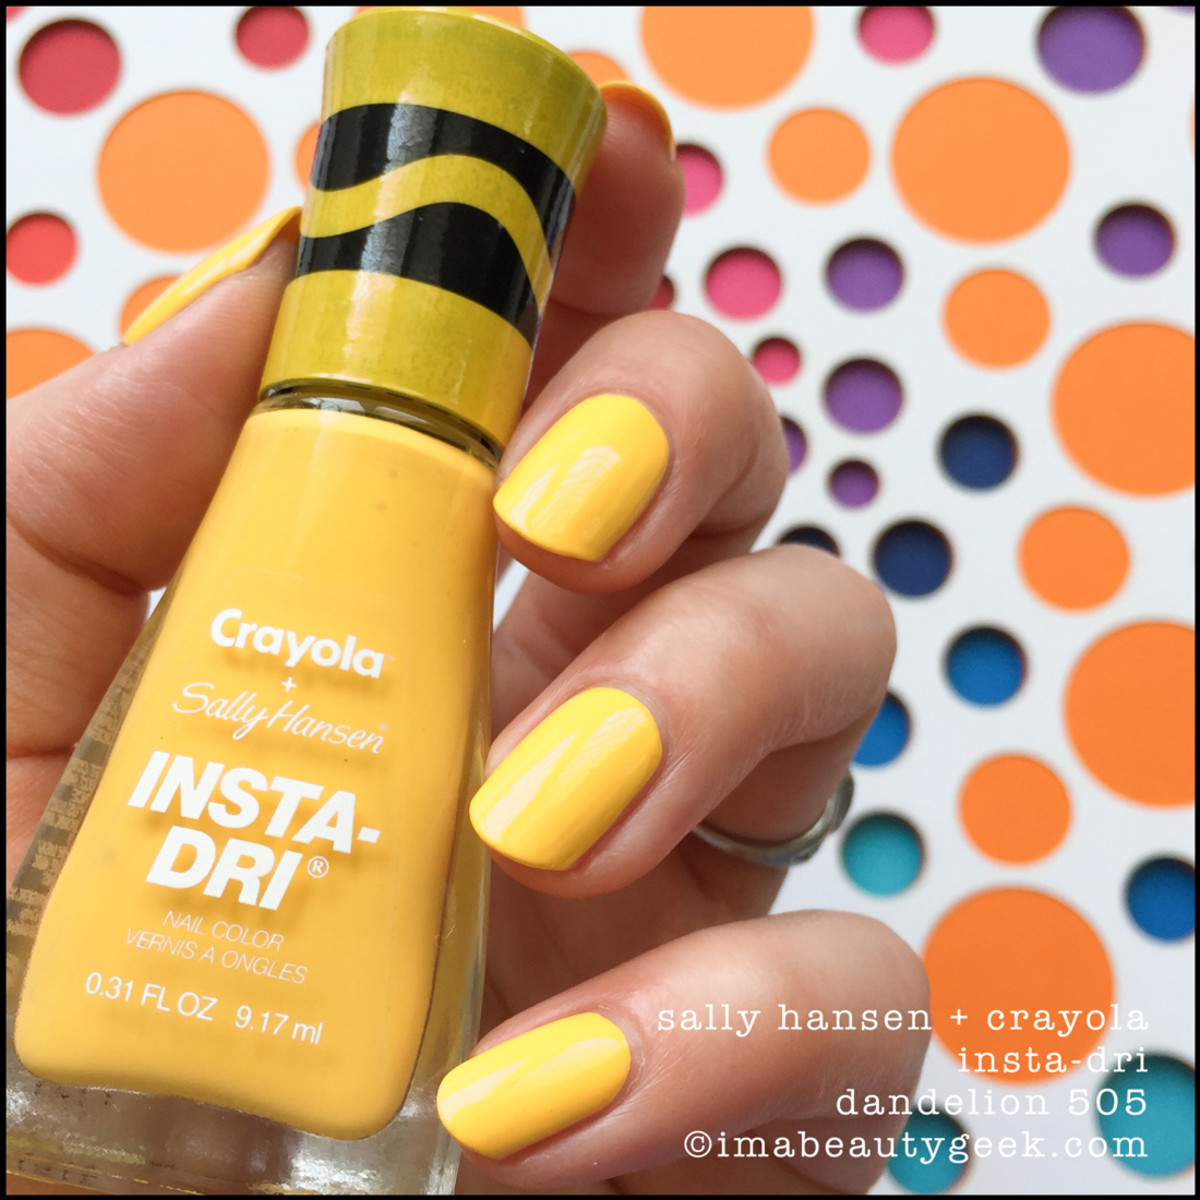 Sally Hansen Crayola Dandelion 505 _ Sally Hansen Crayola Swatches Review 2017 Collection